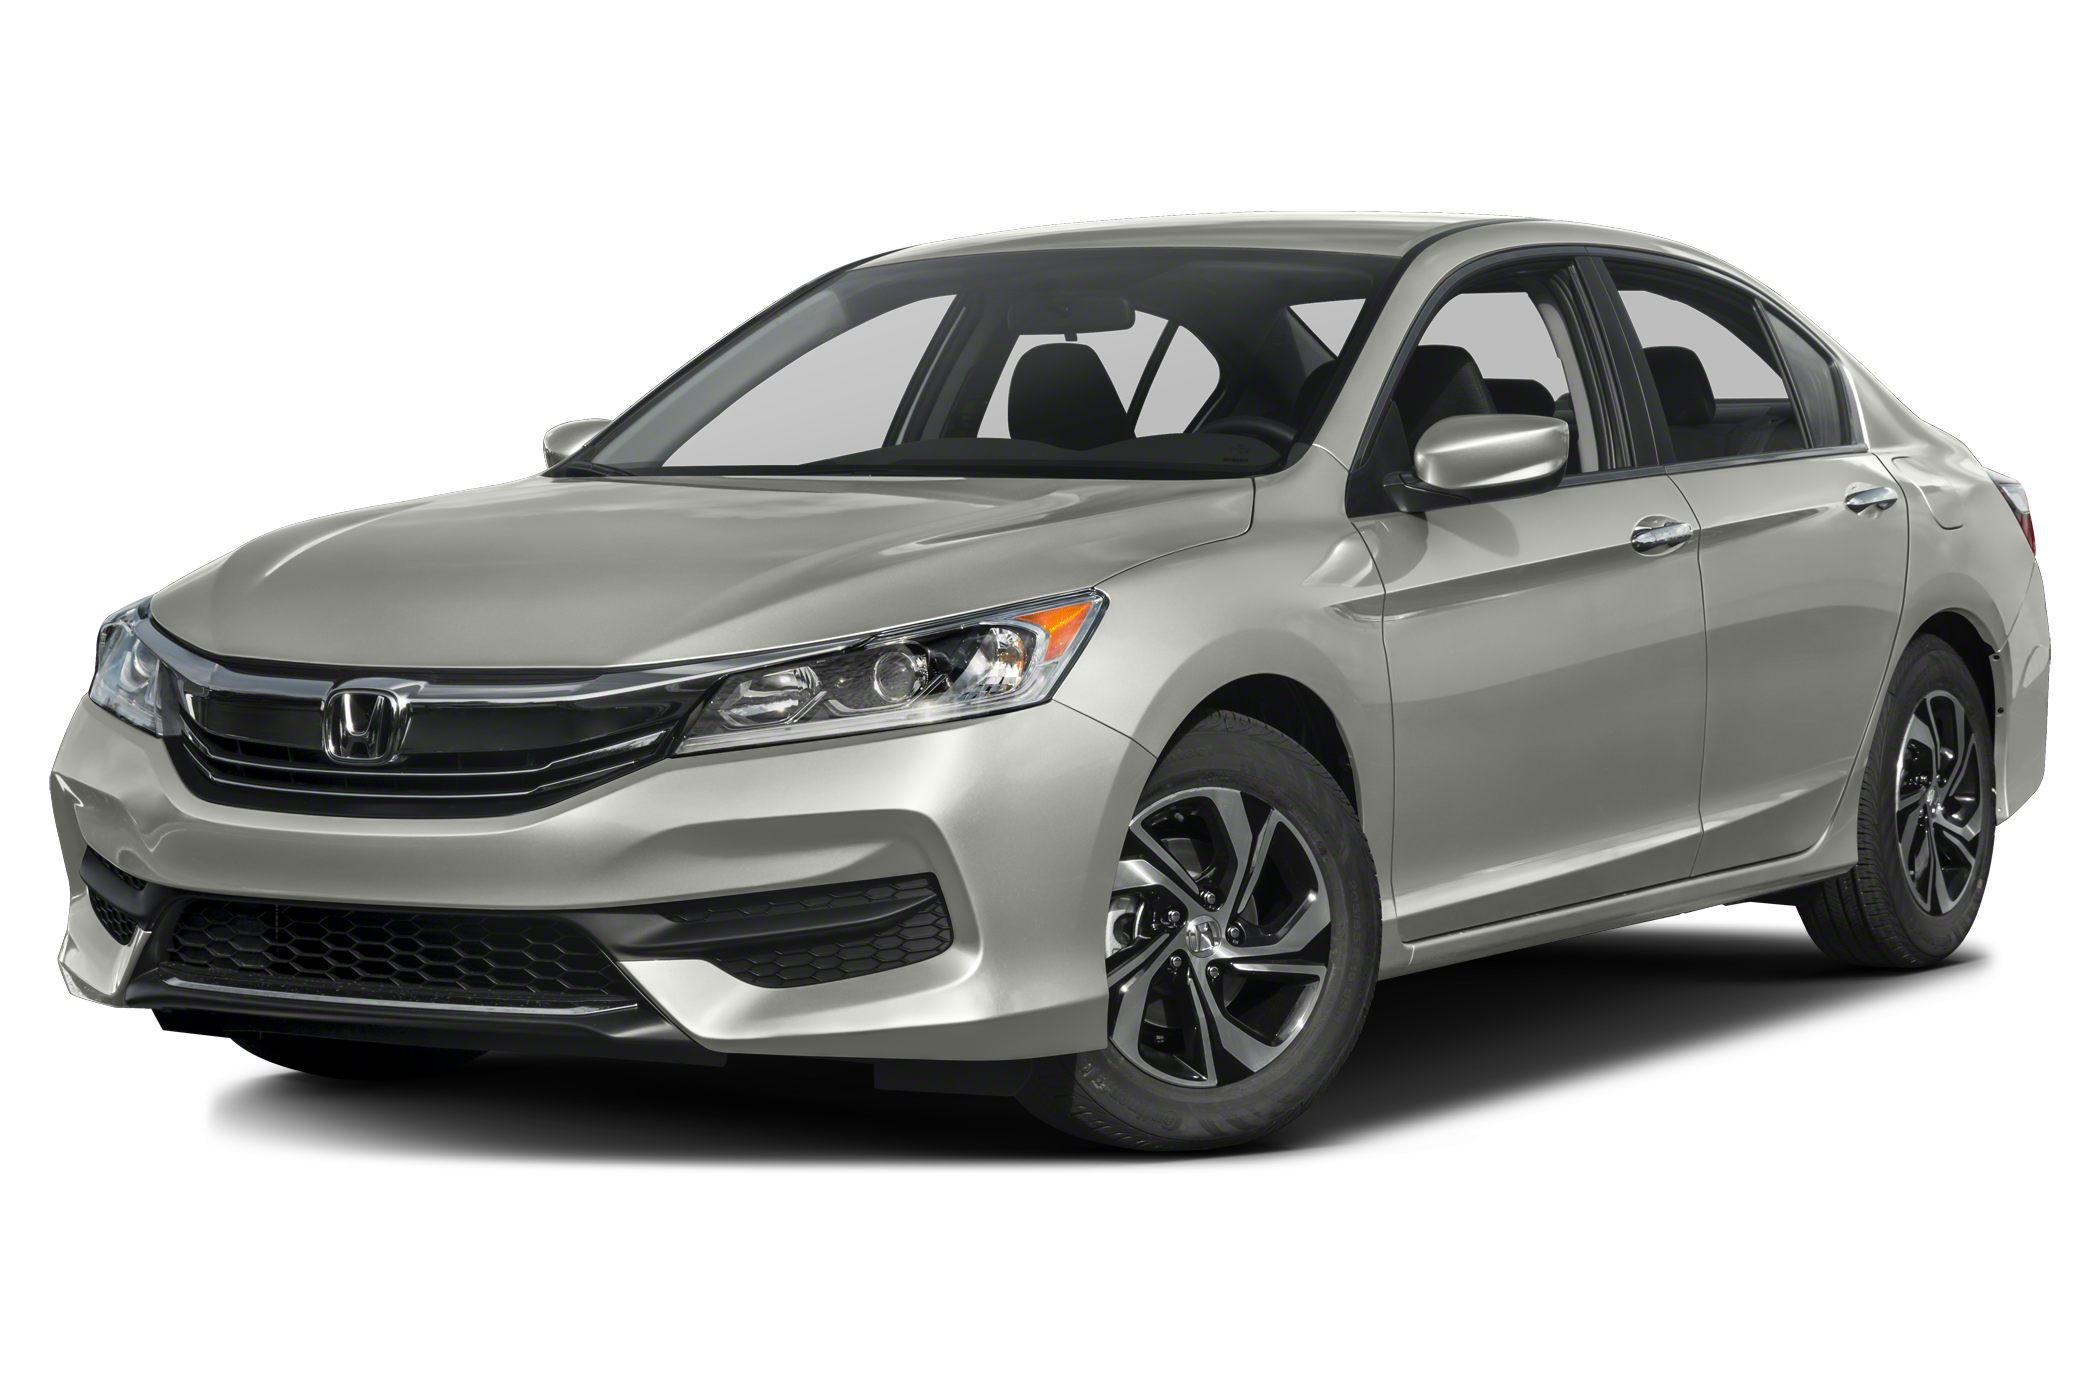 2016 Honda Accord Pricing And Specs